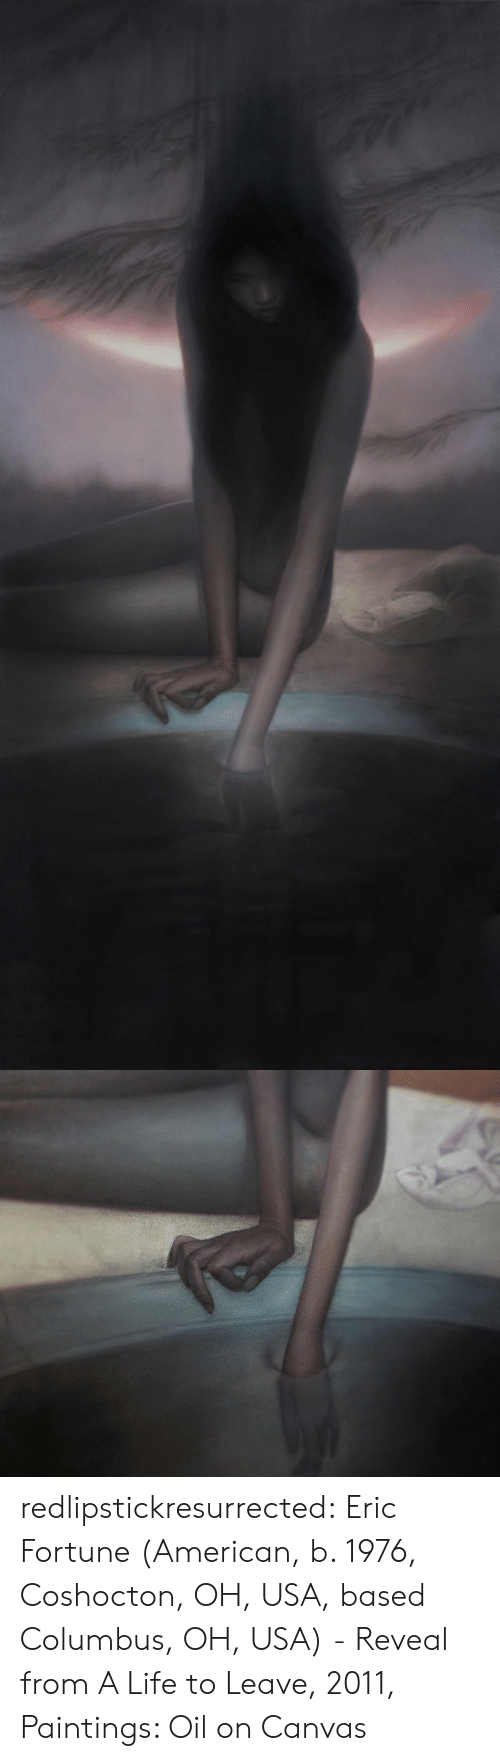 eric: redlipstickresurrected:  Eric Fortune (American, b. 1976, Coshocton, OH, USA, based Columbus, OH, USA) - Reveal from A Life to Leave, 2011, Paintings: Oil on Canvas